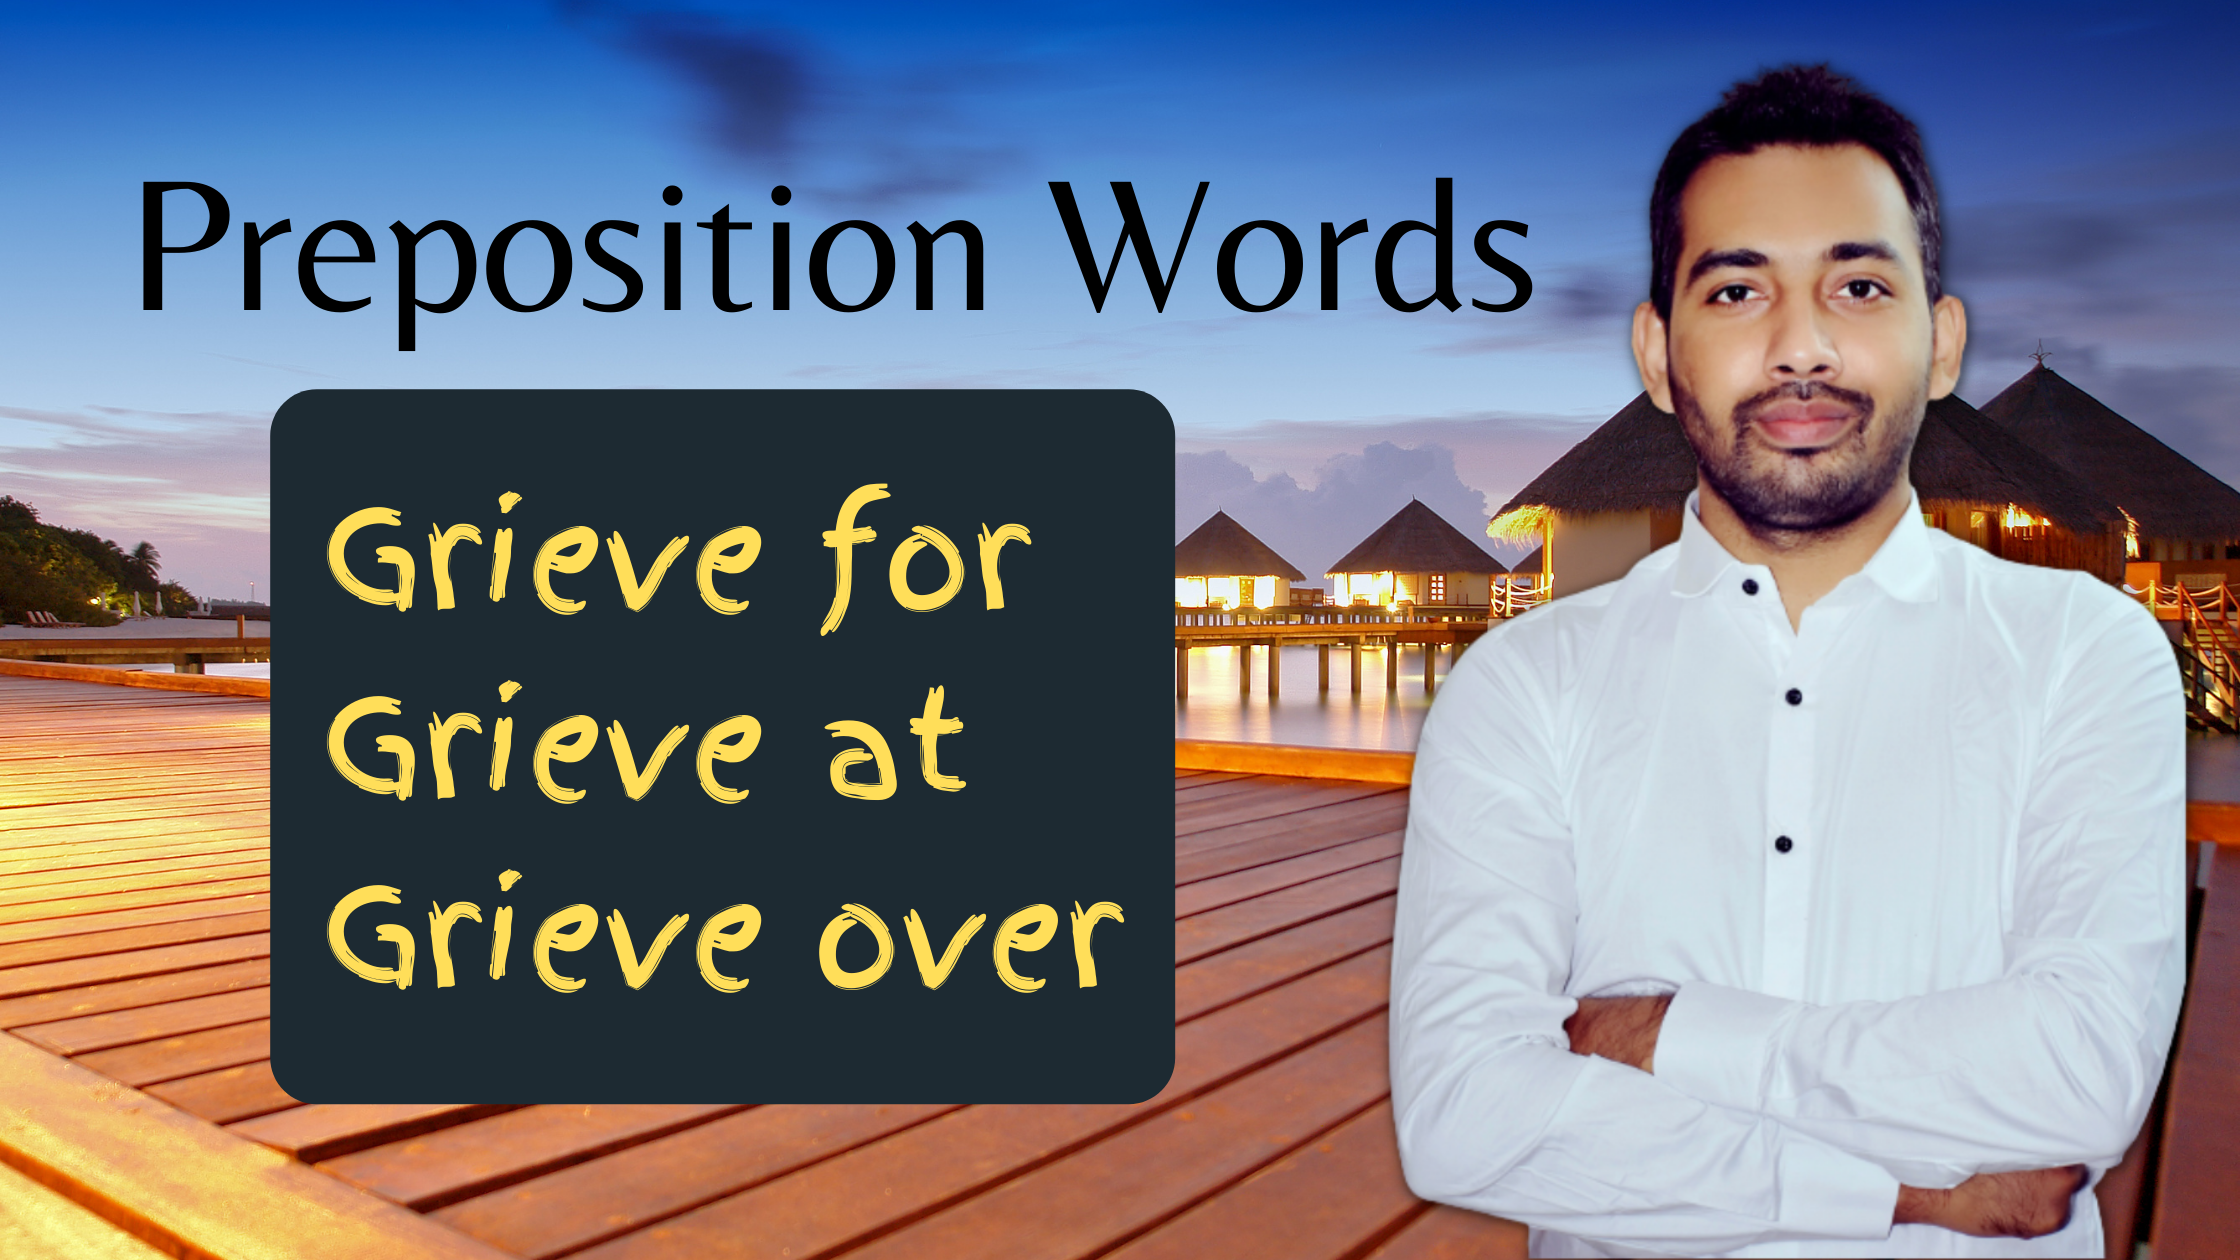 Preposition words with grieve